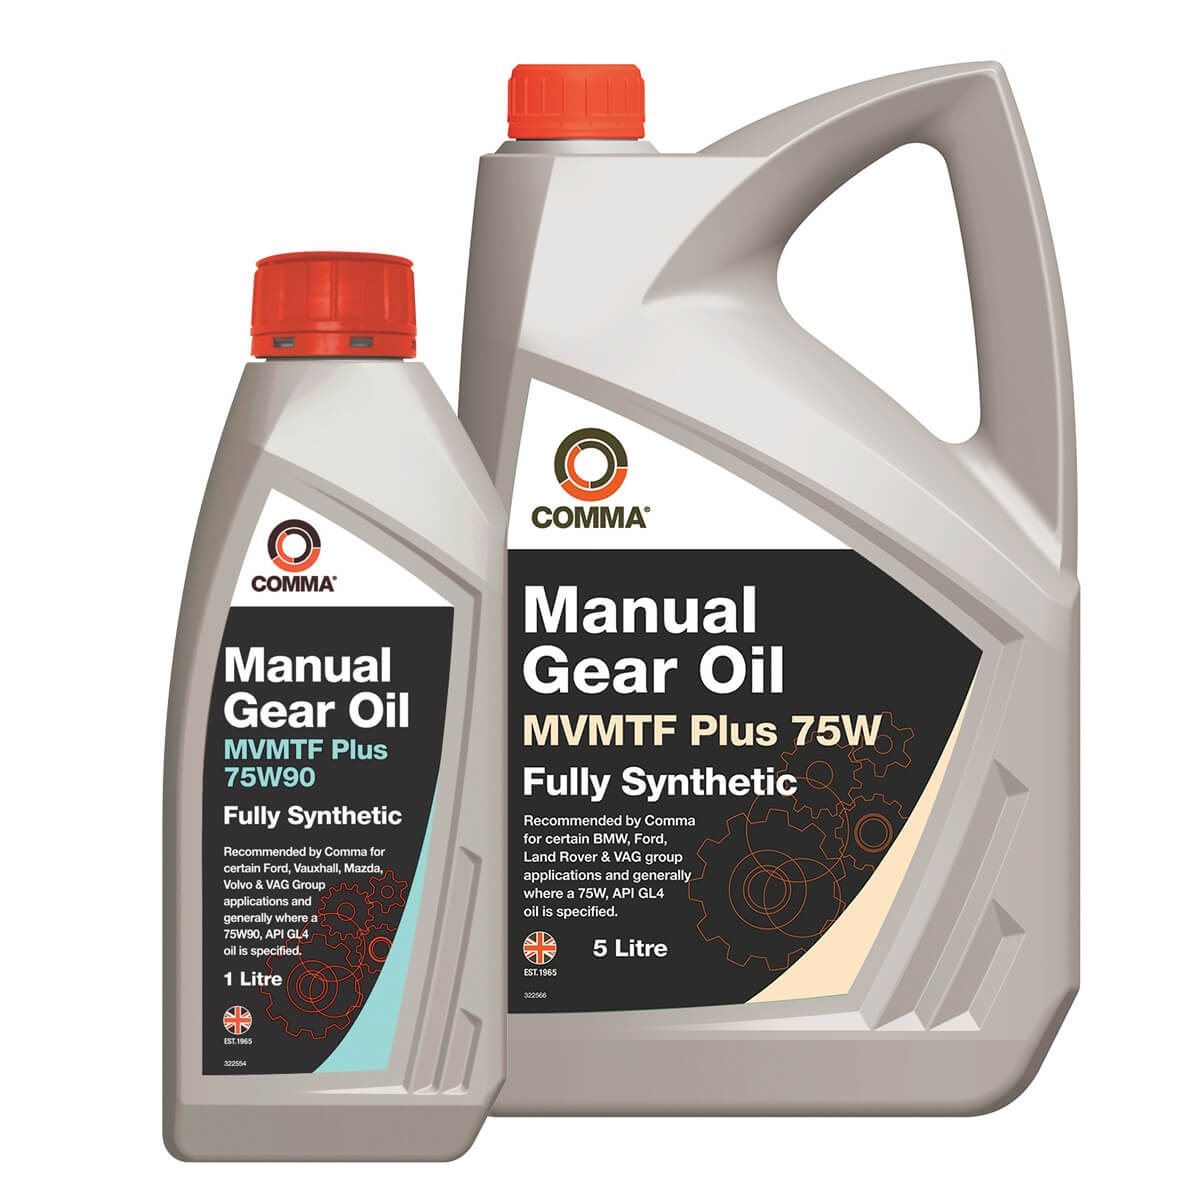 AUDI RSQ3 Manual Transmission Oil